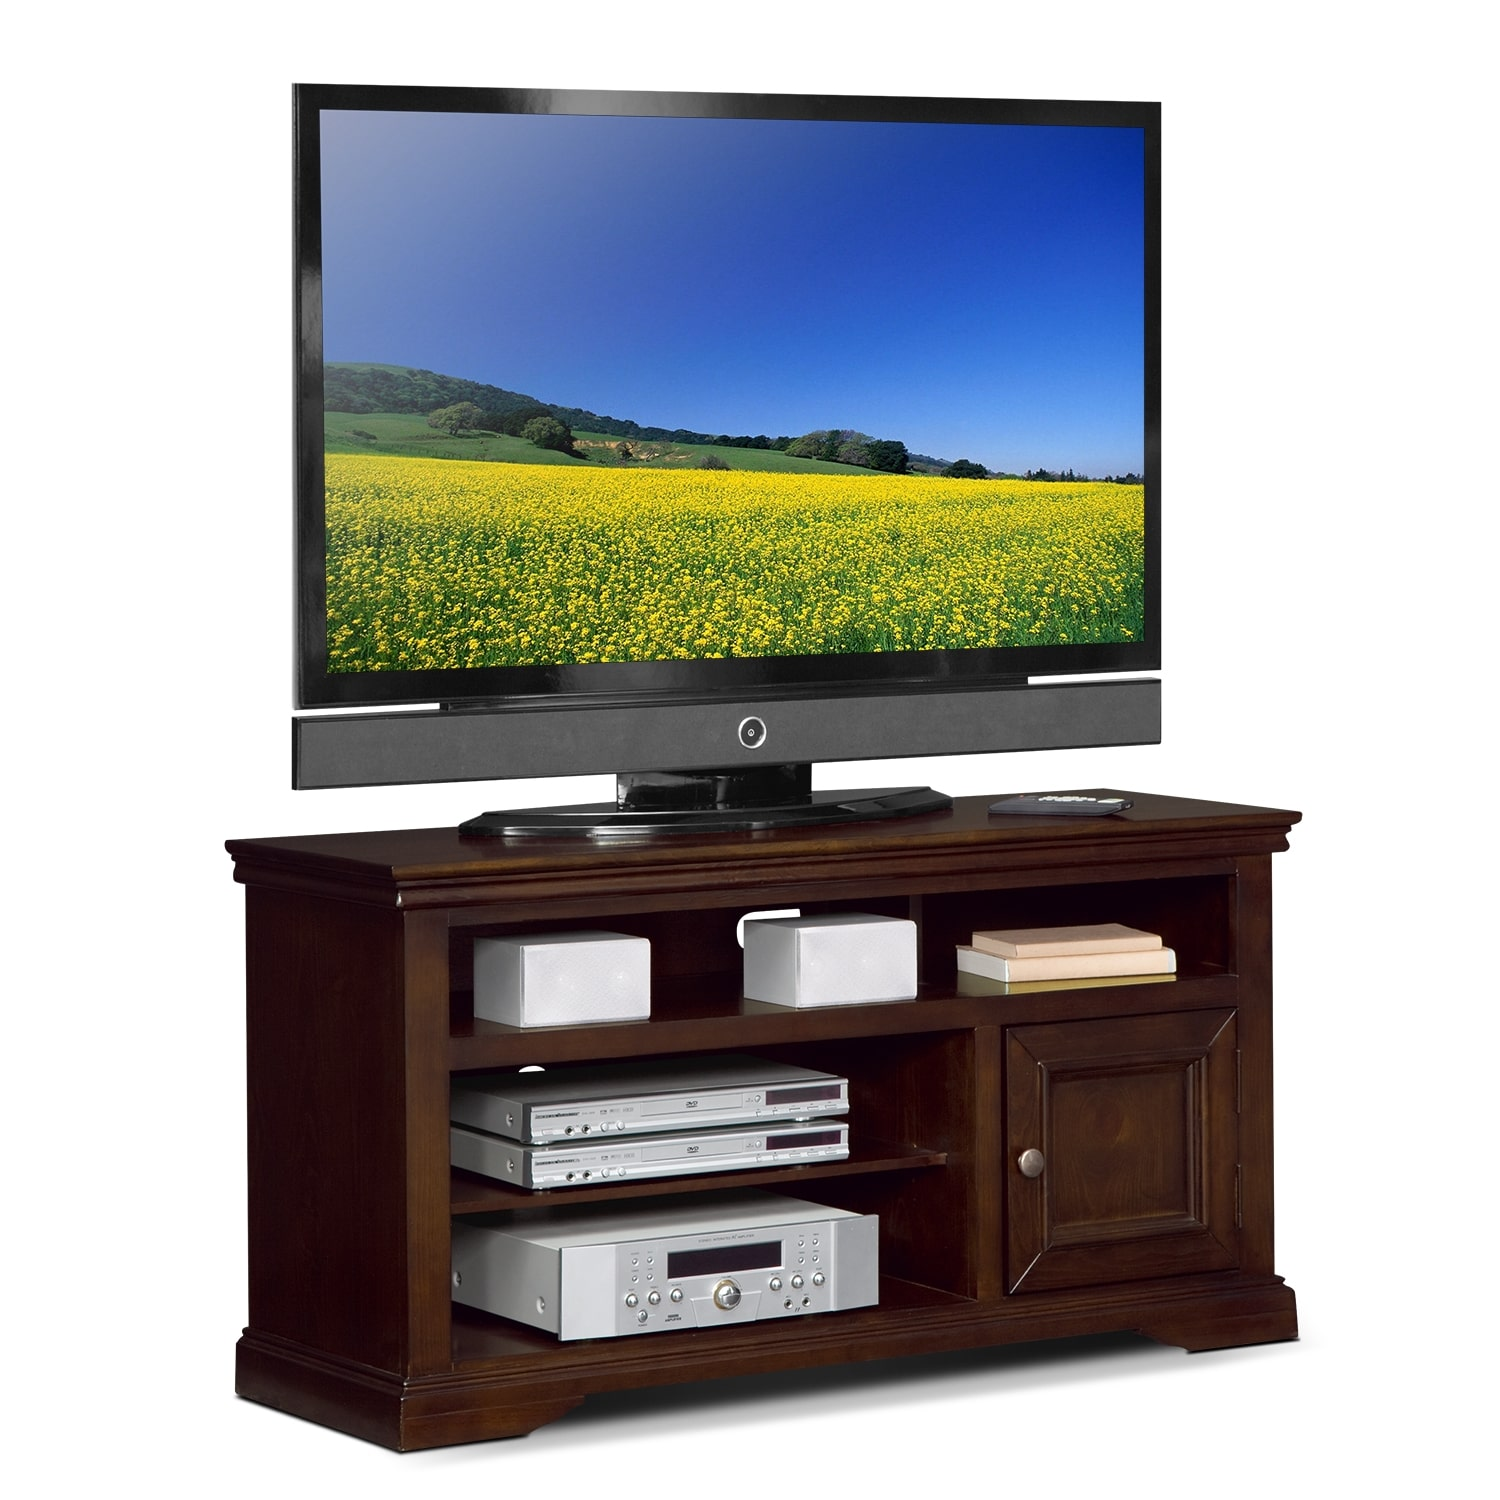 "50 Inch Tv Stands American Freight Furniture: Jenson 50"" TV Stand - Cherry"